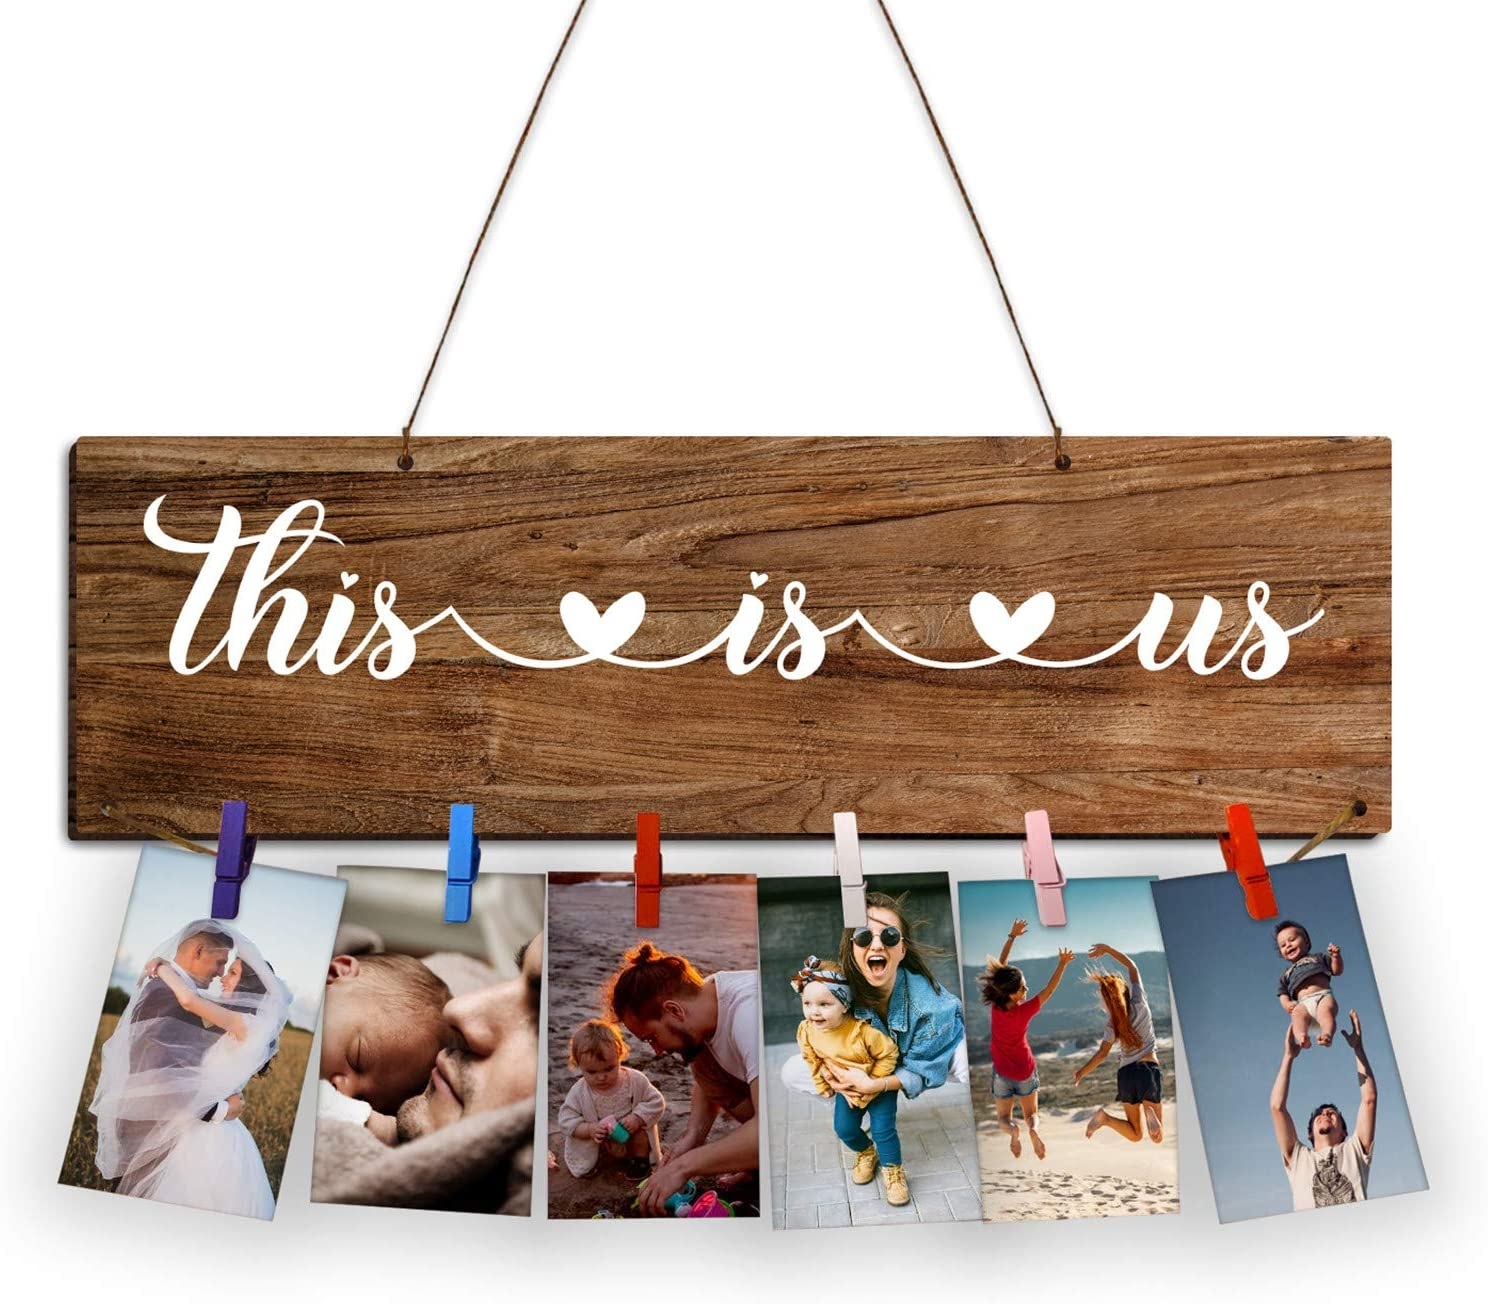 Zhuper This is Us Sign Home Decor This is Us Family Photo Display Board Farmhouse Wooden Photo Holder Picture Hanging Frame Sign Wall Decor Christmas Grandma Mother Birthday Gift Housewarming Gift